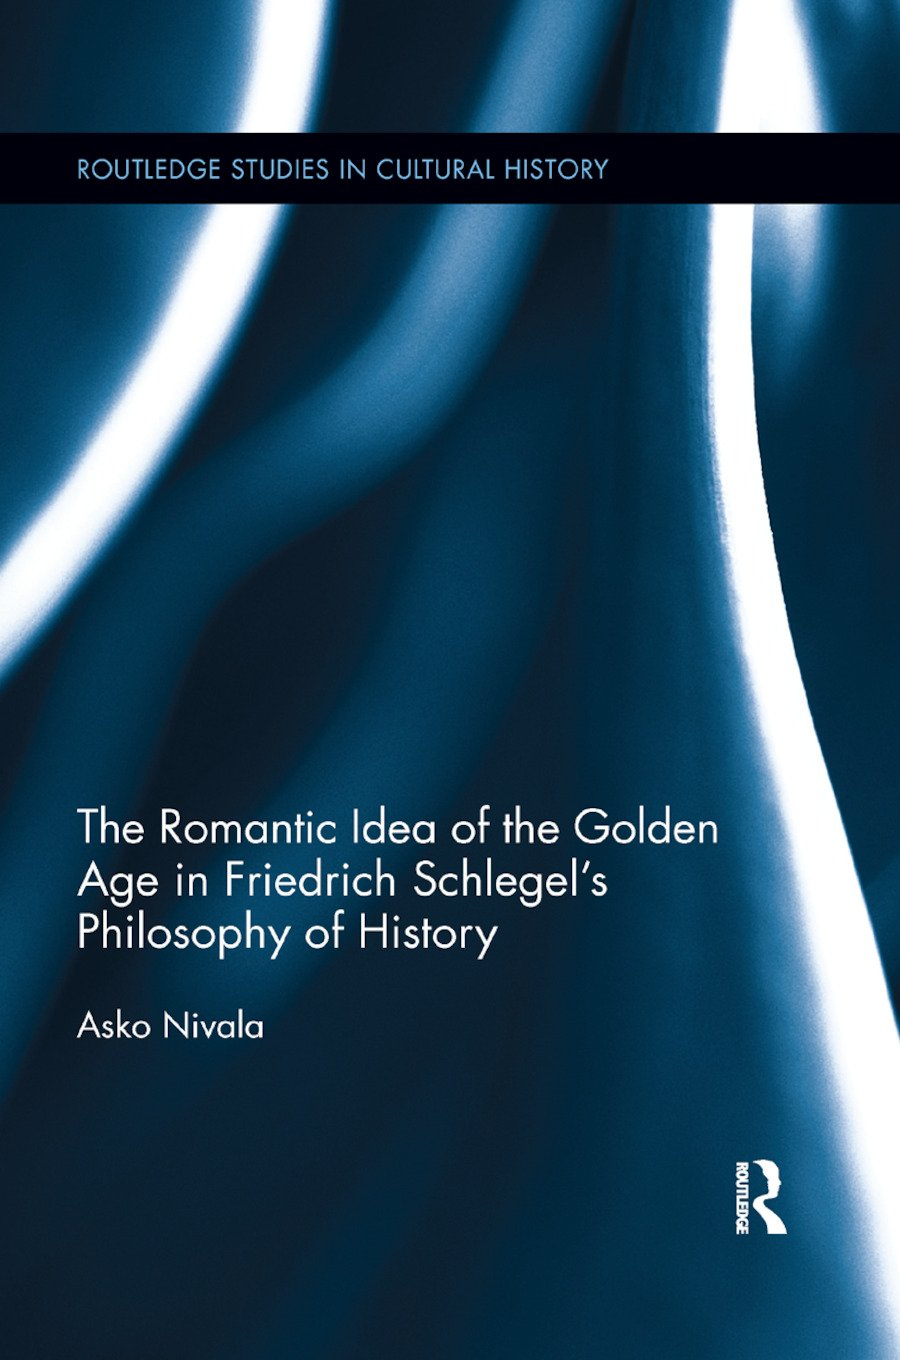 The Romantic Idea of the Golden Age in Friedrich Schlegel's Philosophy of History